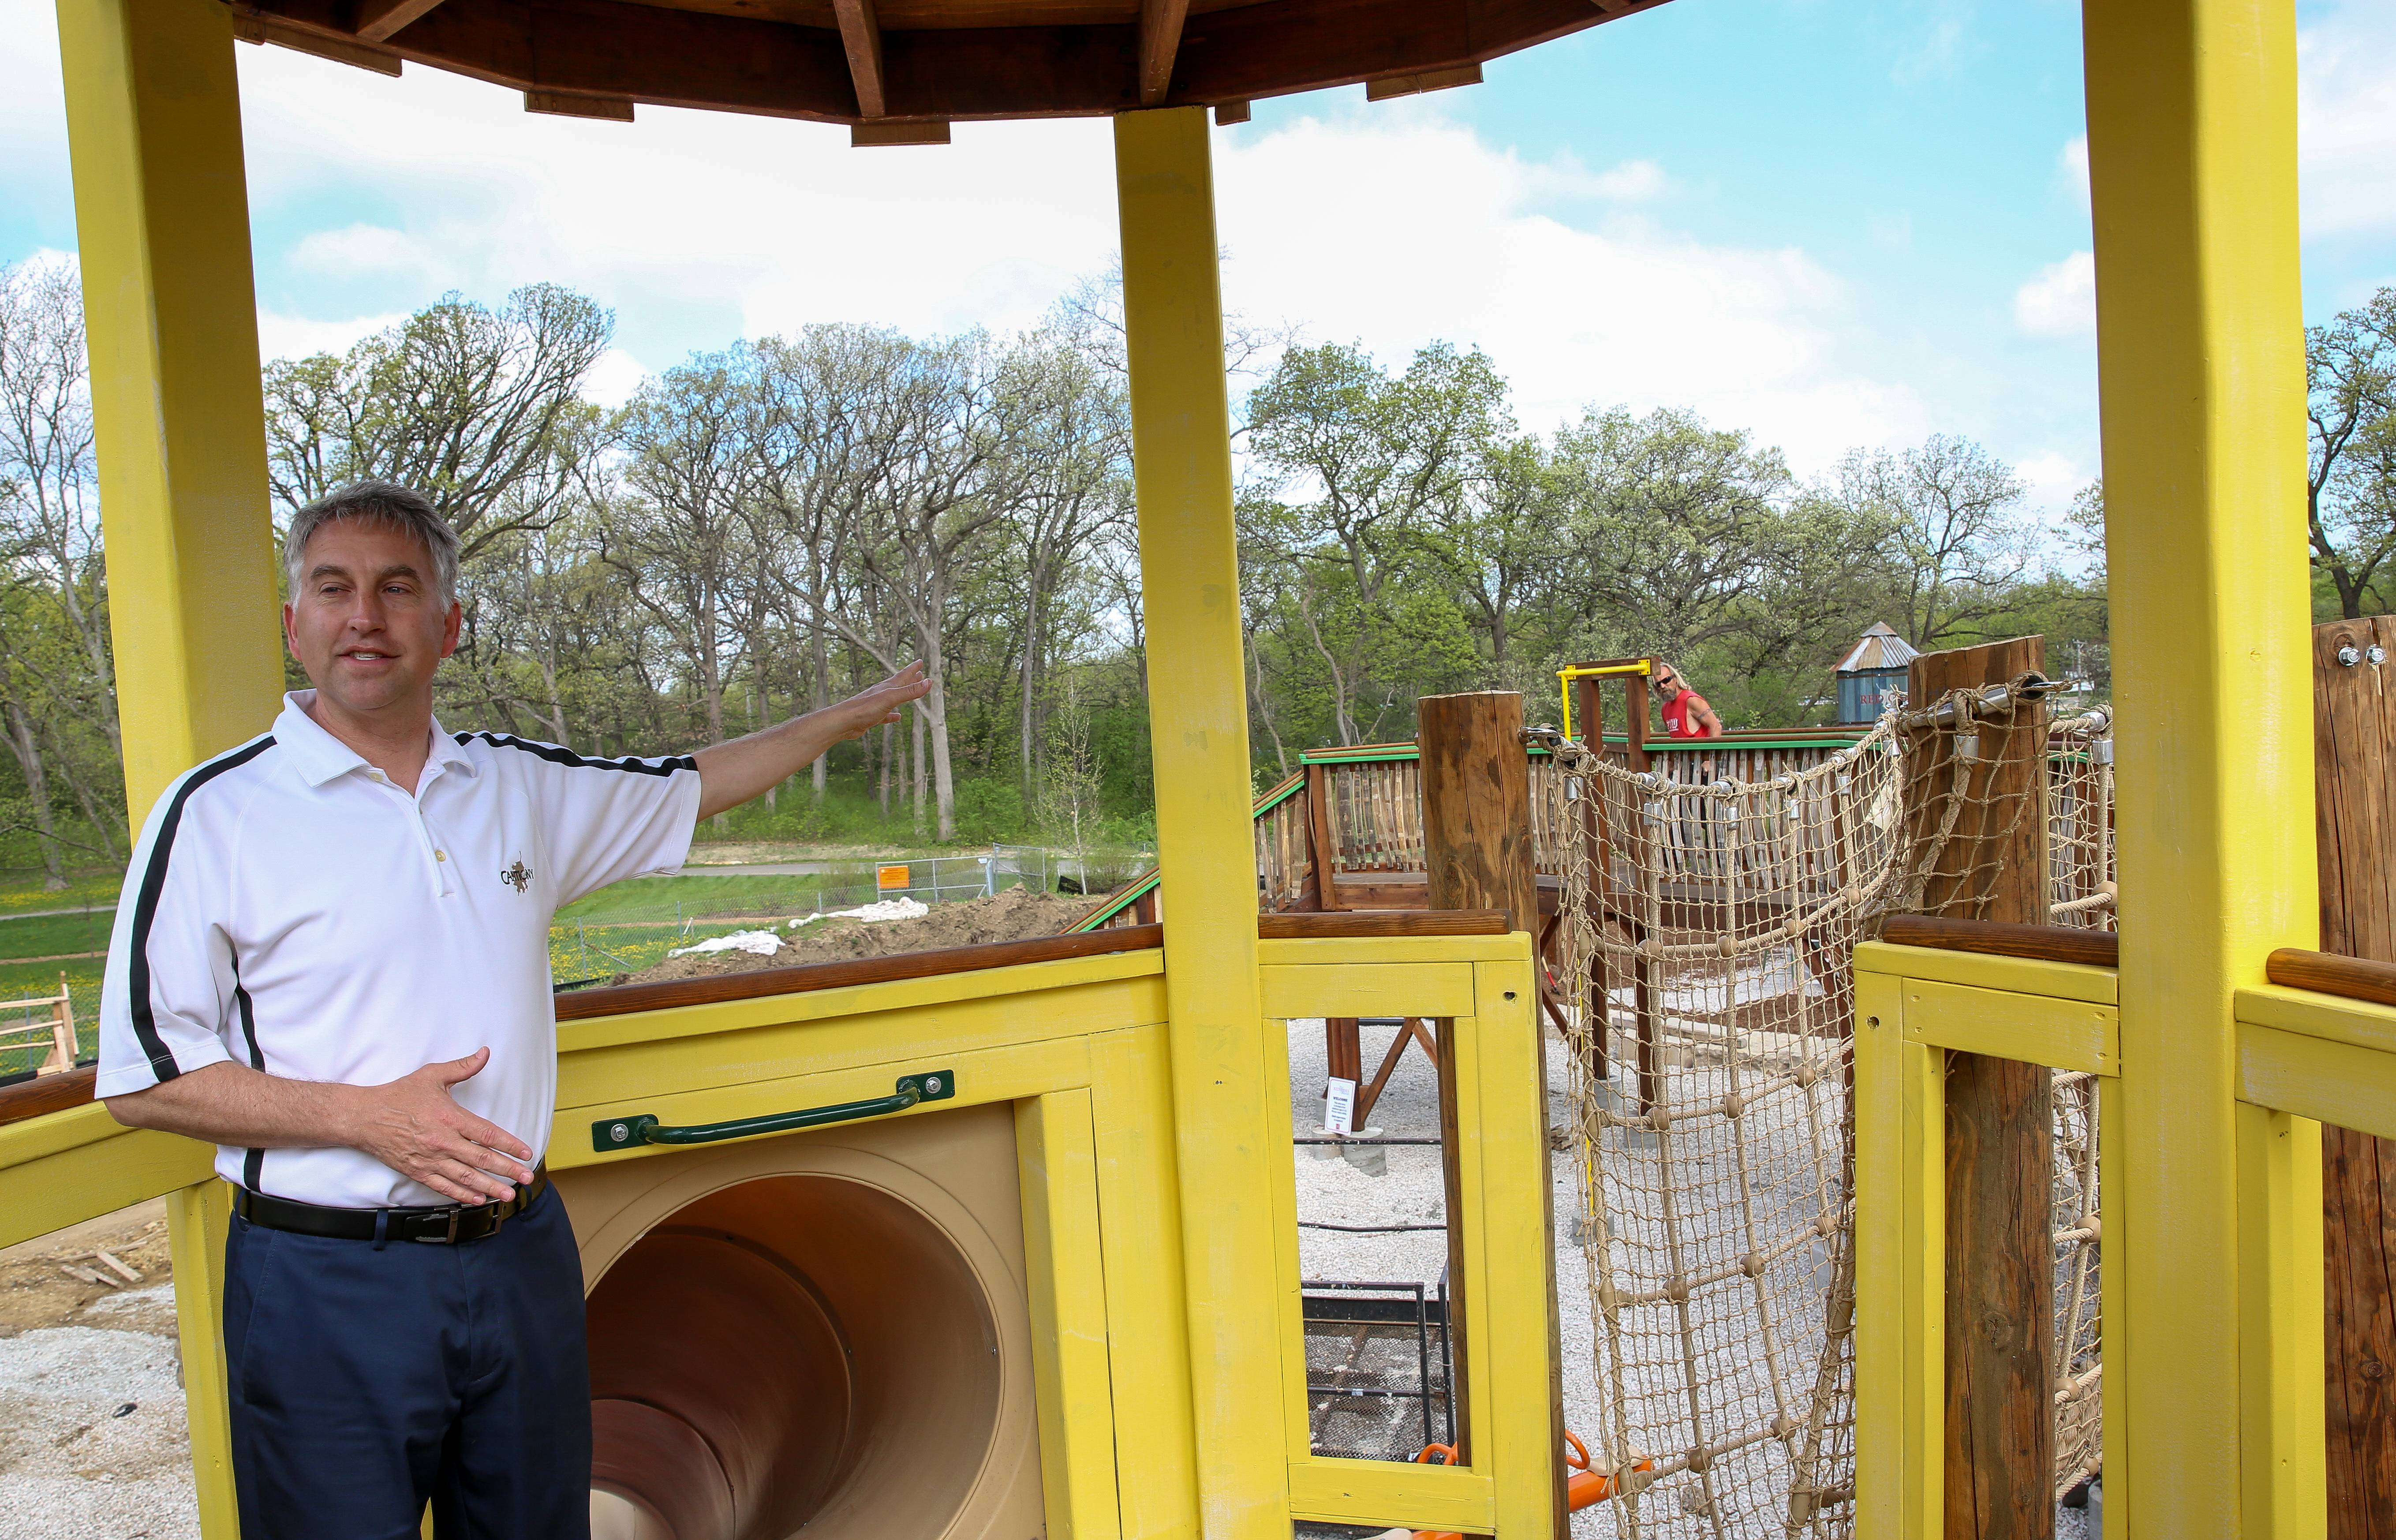 Executive Director Matt LaFond shows off Cantigny's Red Oaks Farm playground, a new attraction opening Memorial Day weekend.